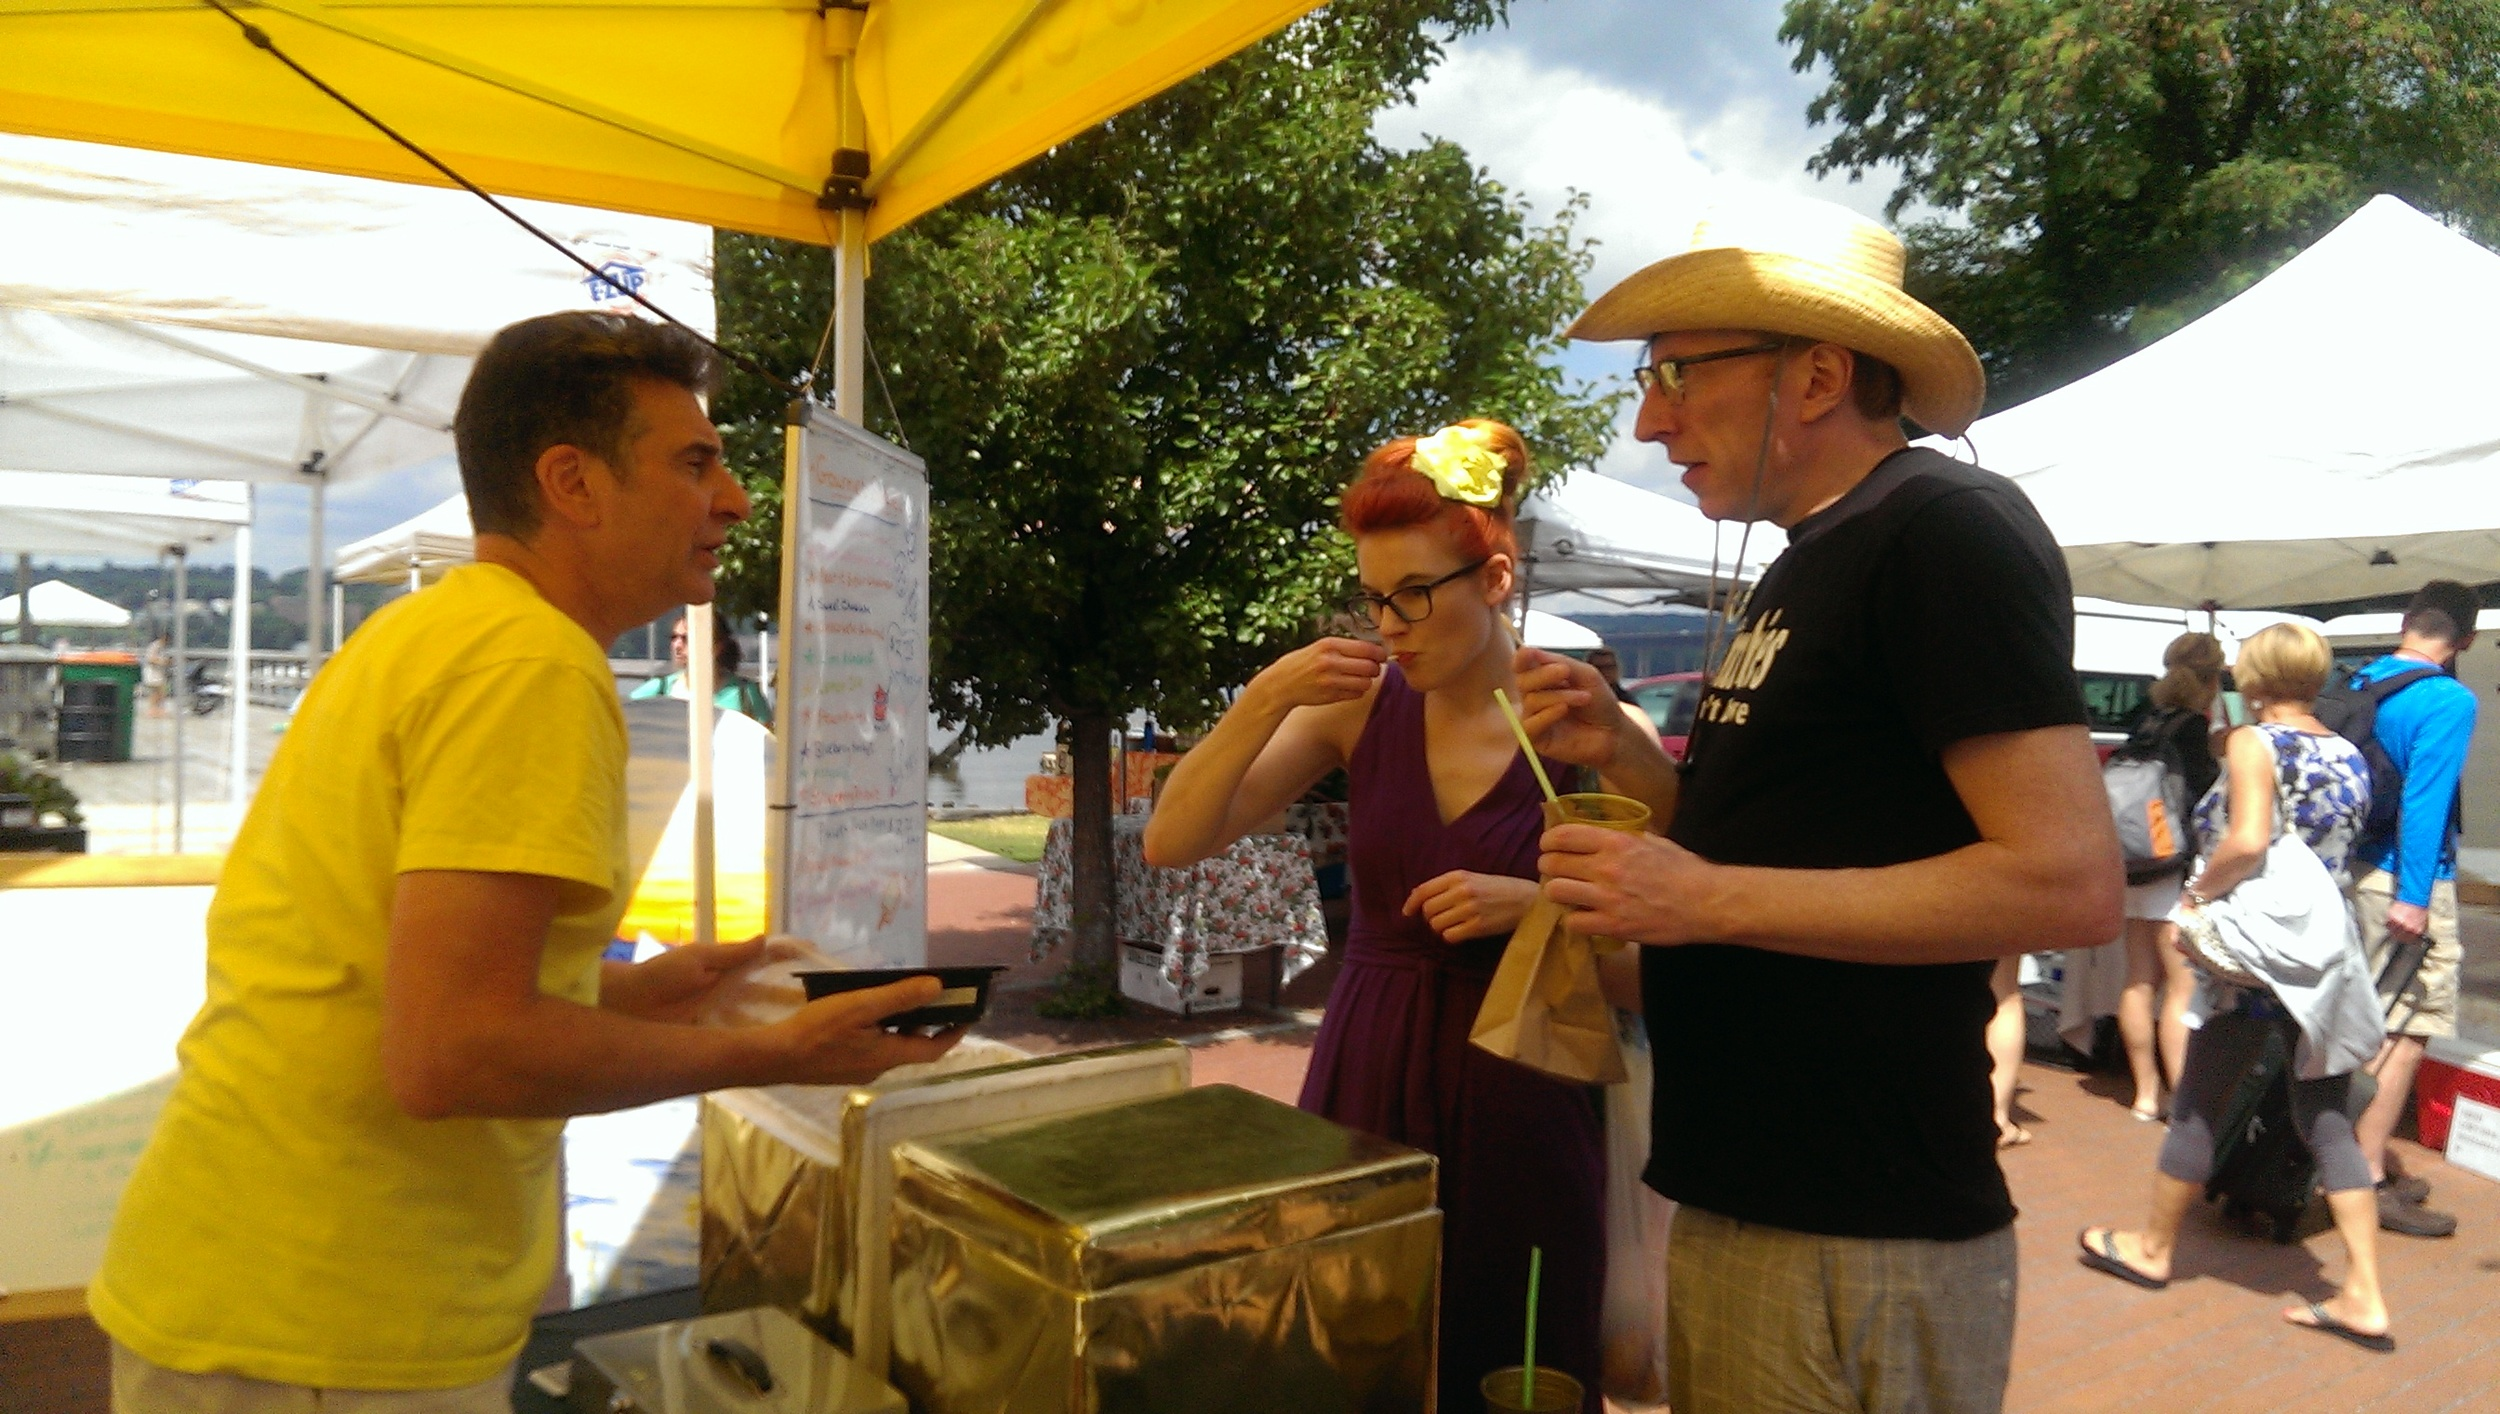 J with the sorbet samples and K and S hanging out tasting the frozen treats.